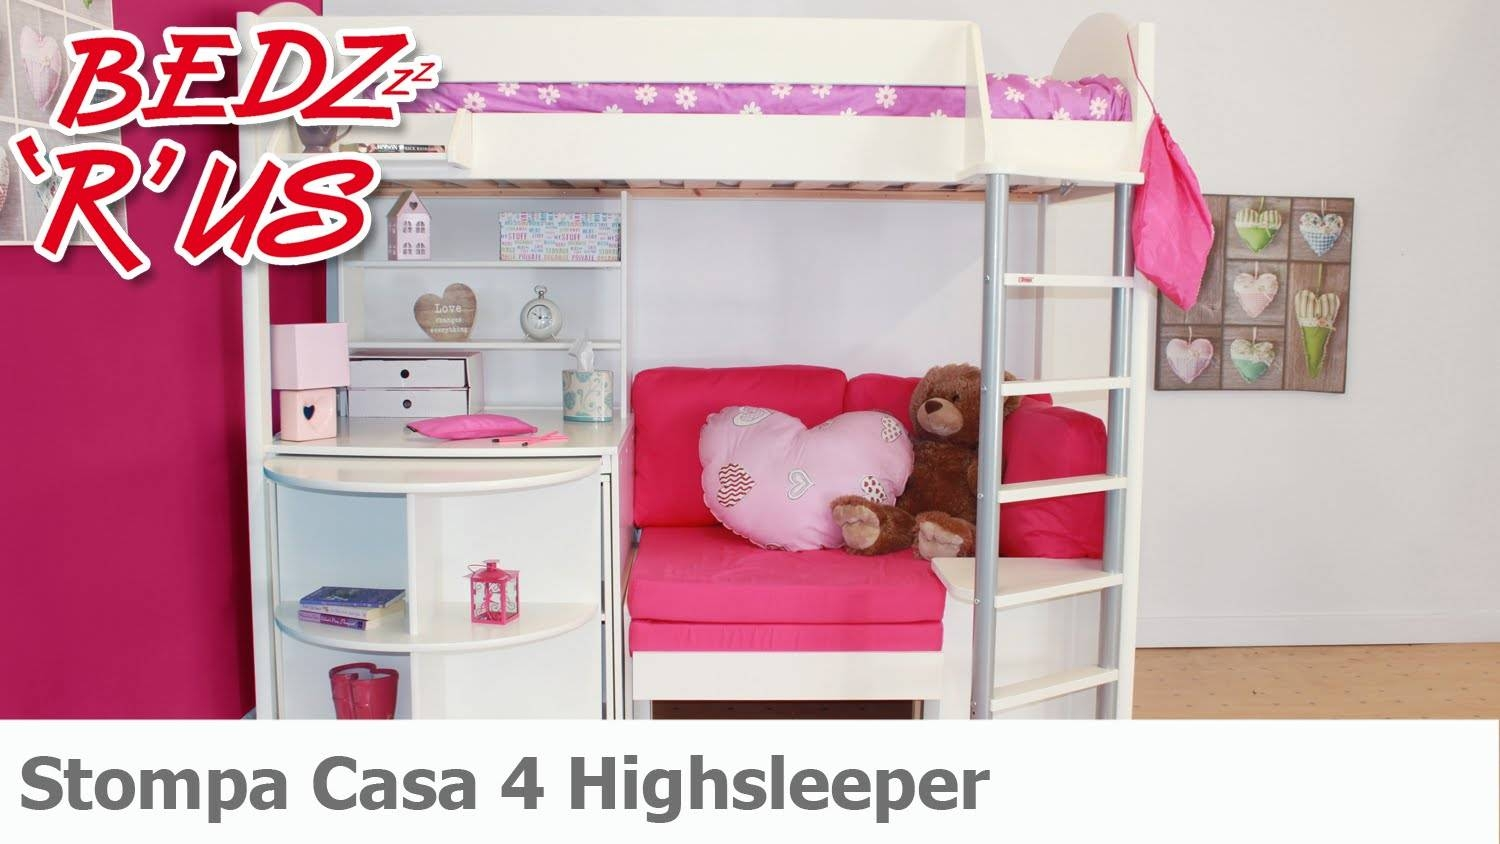 Stompa Casa 4 Highsleeper Bed - Bedzrus - Youtube with High Sleeper With Desk and Sofa Bed (Image 23 of 30)